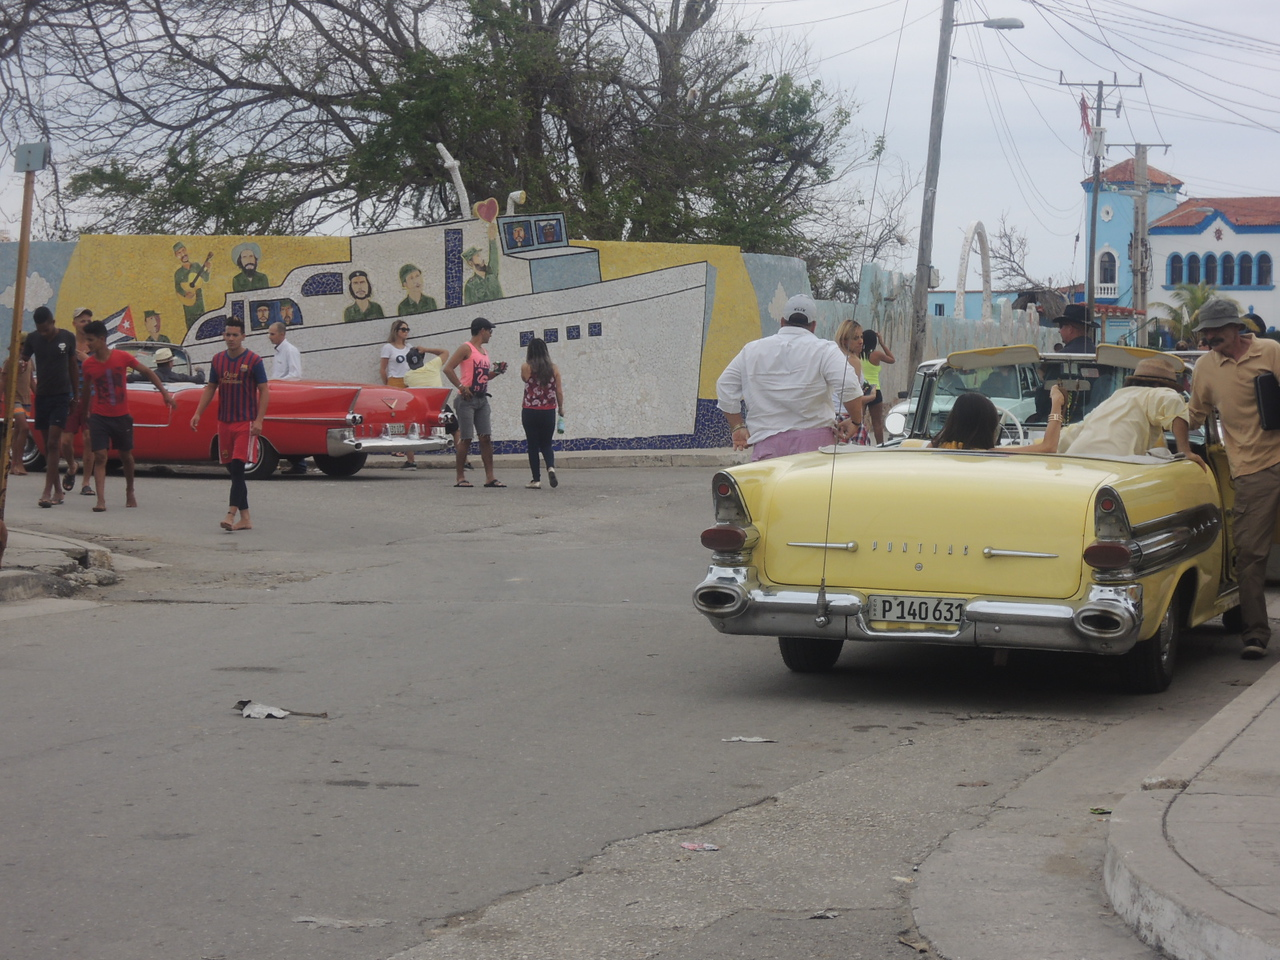 The 1956 Pontiac showed up at La Cuidad, and then came the 1957 Cadillac on the left.